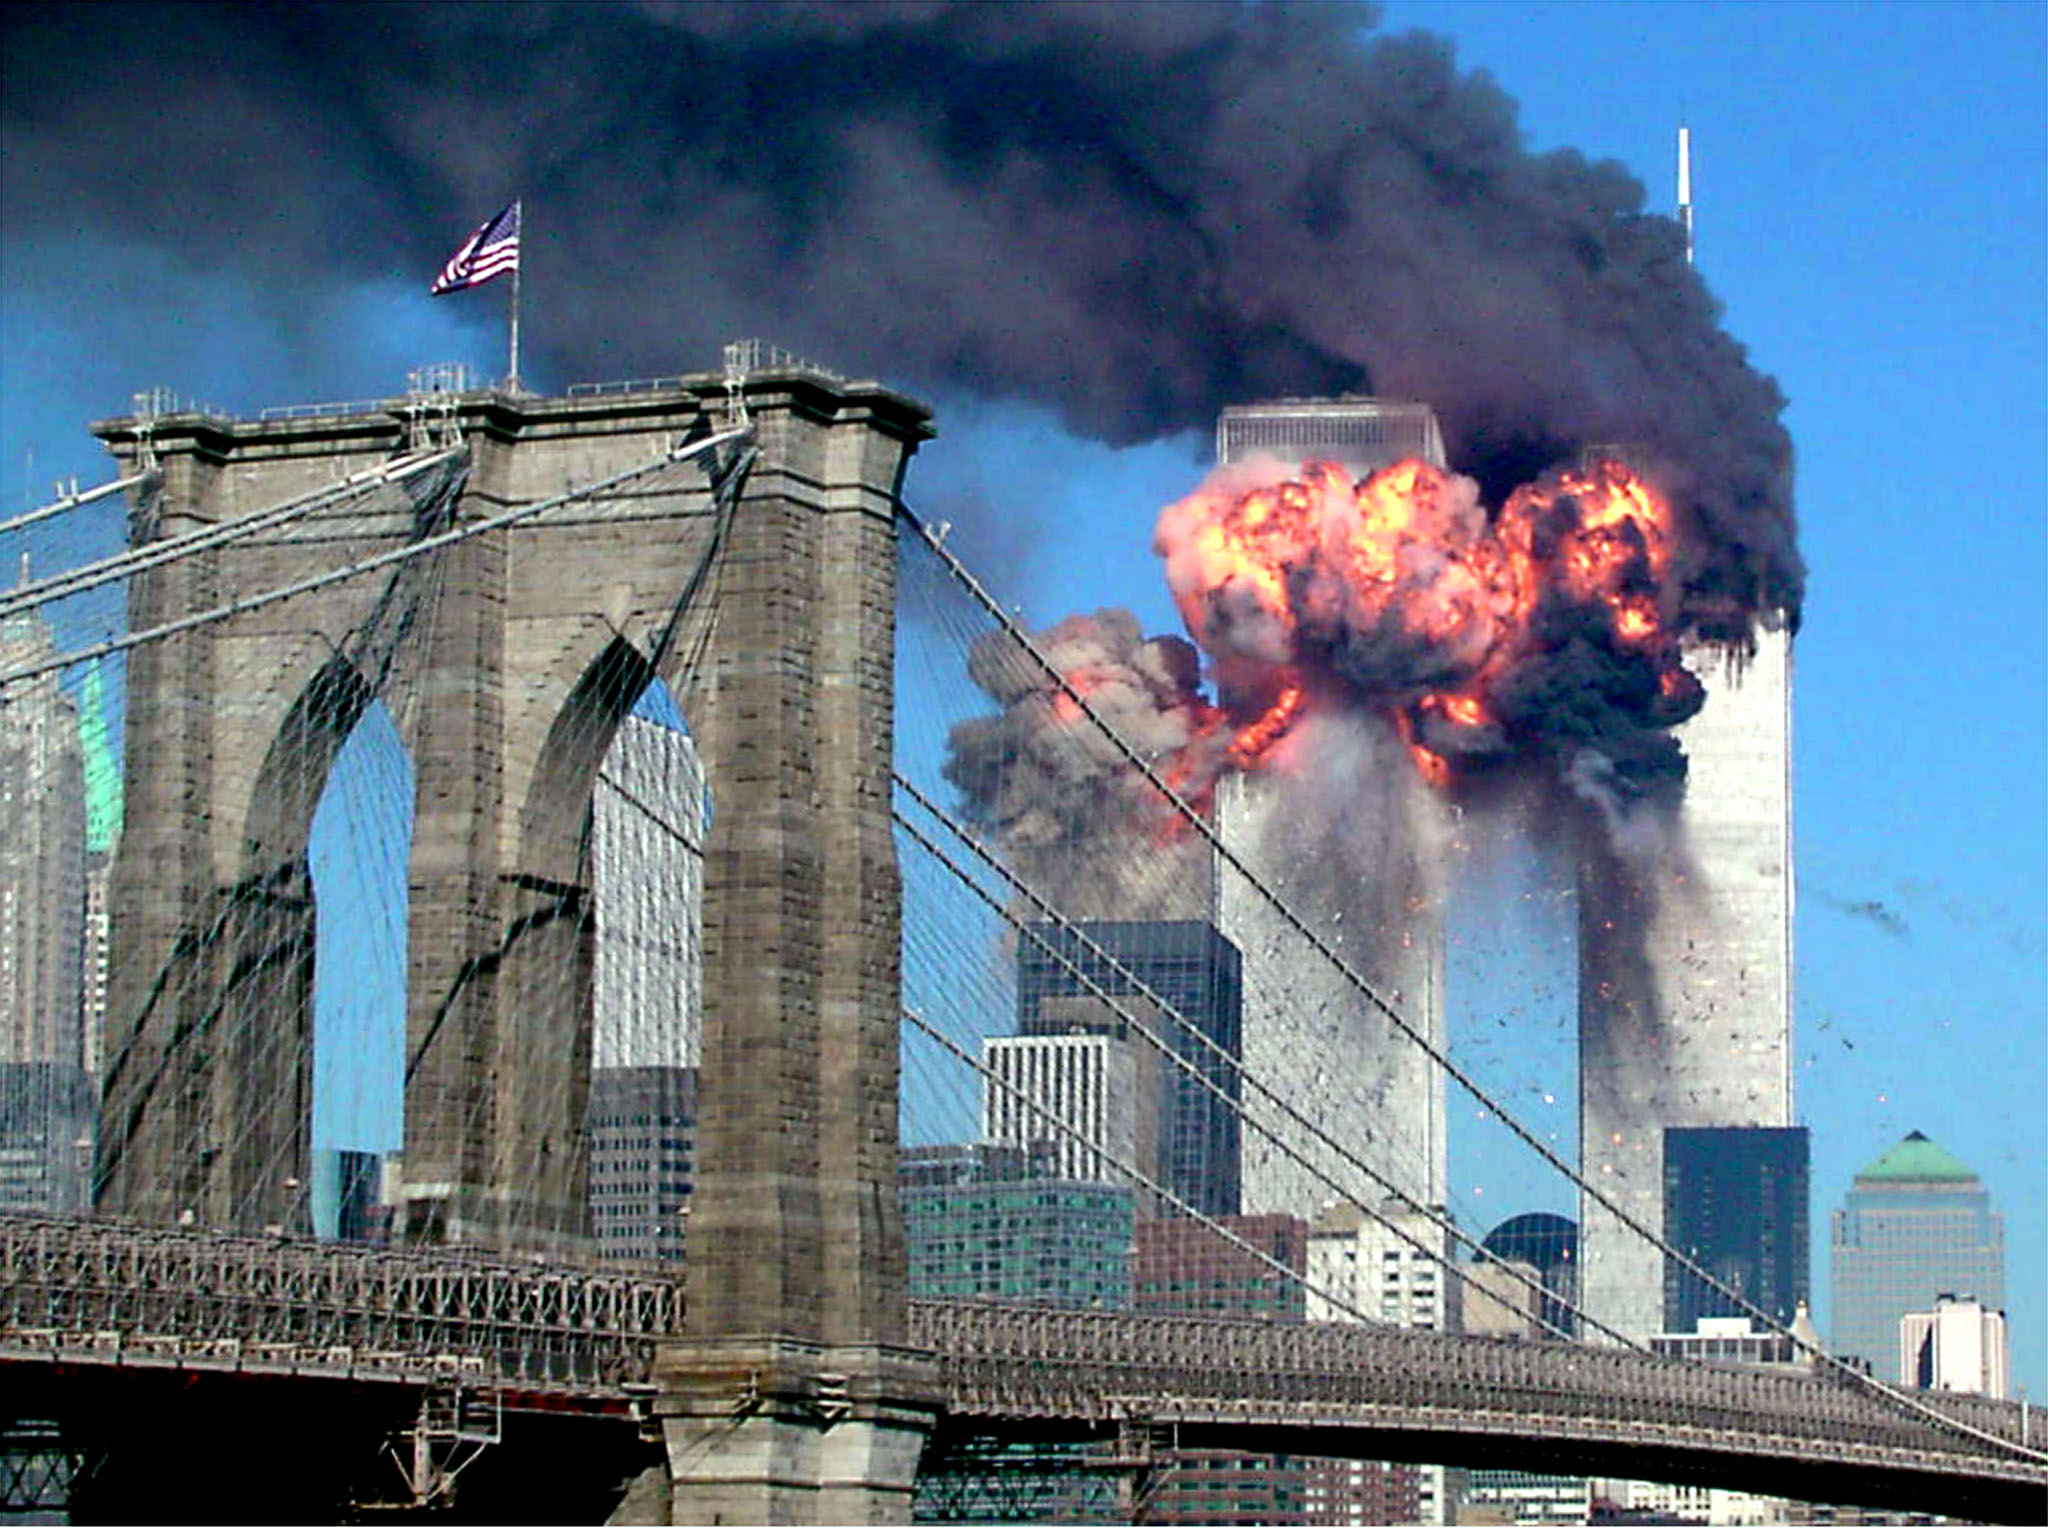 The second tower of the World Trade Centre explodes after being hit by a hijacked airplane. A bridge with an American flag flying is in the foreground.